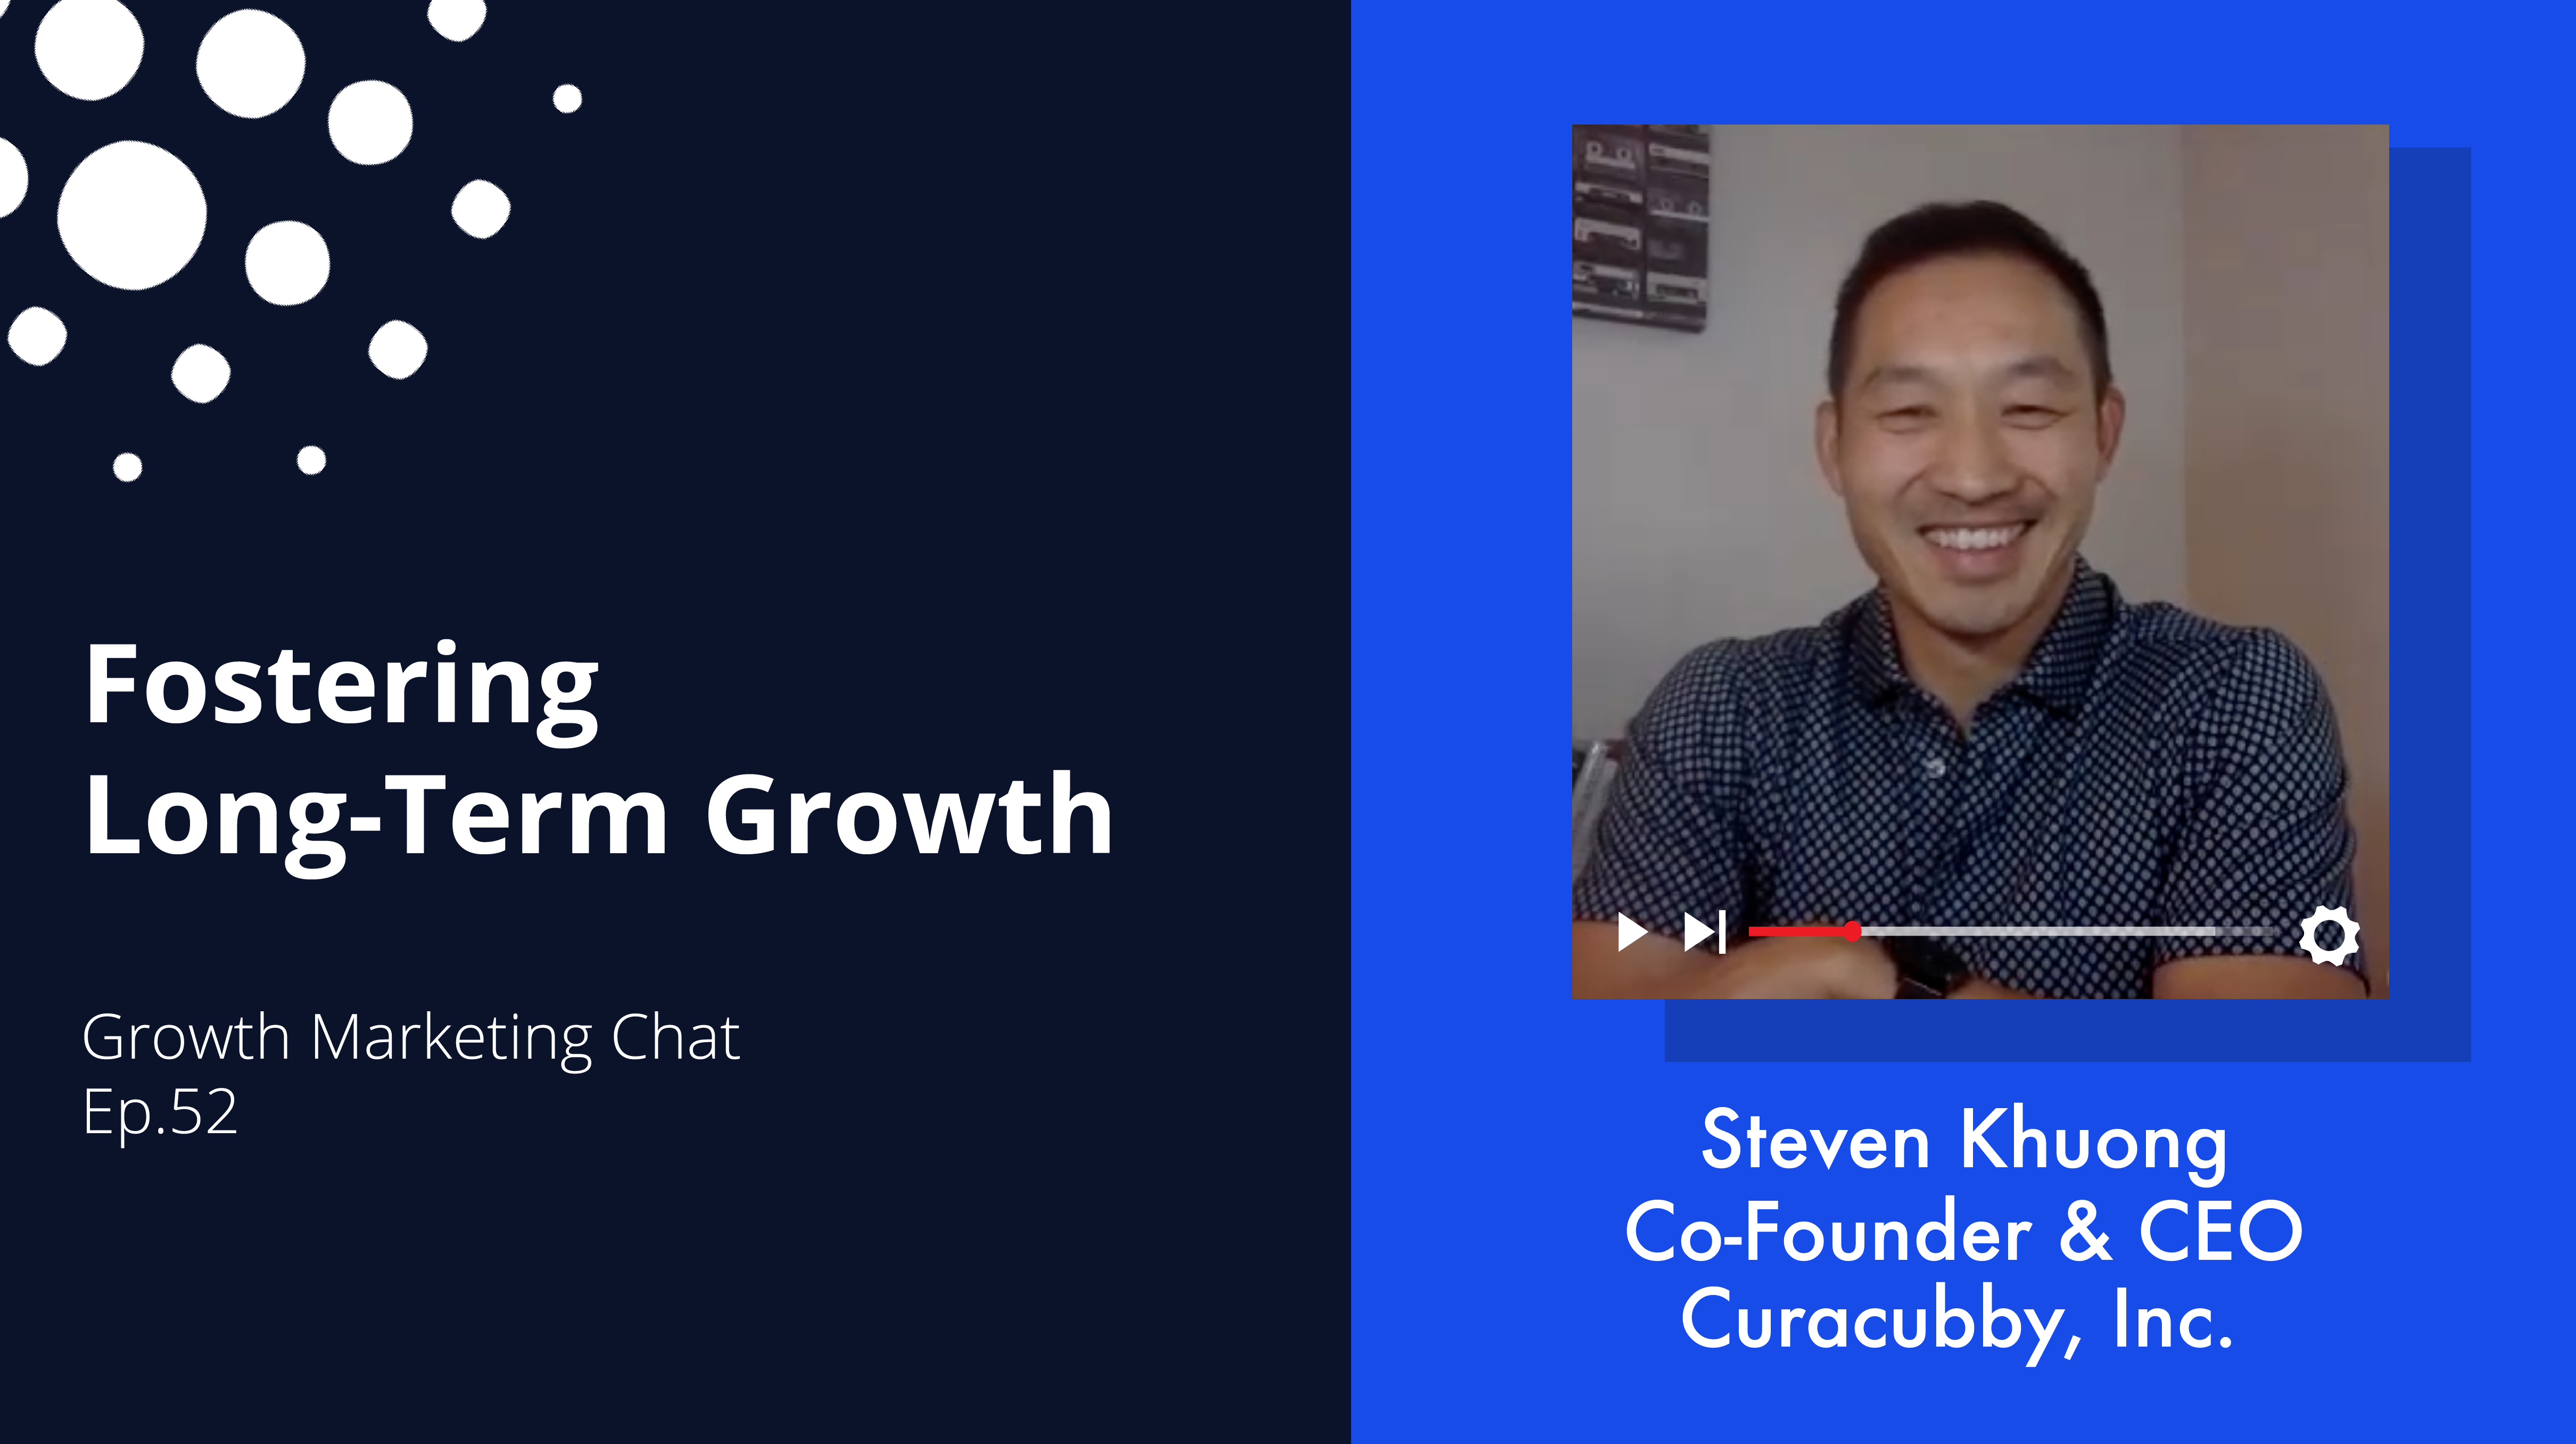 Aligning Your Teams to Your Long-Term Growth Marketing Strategy